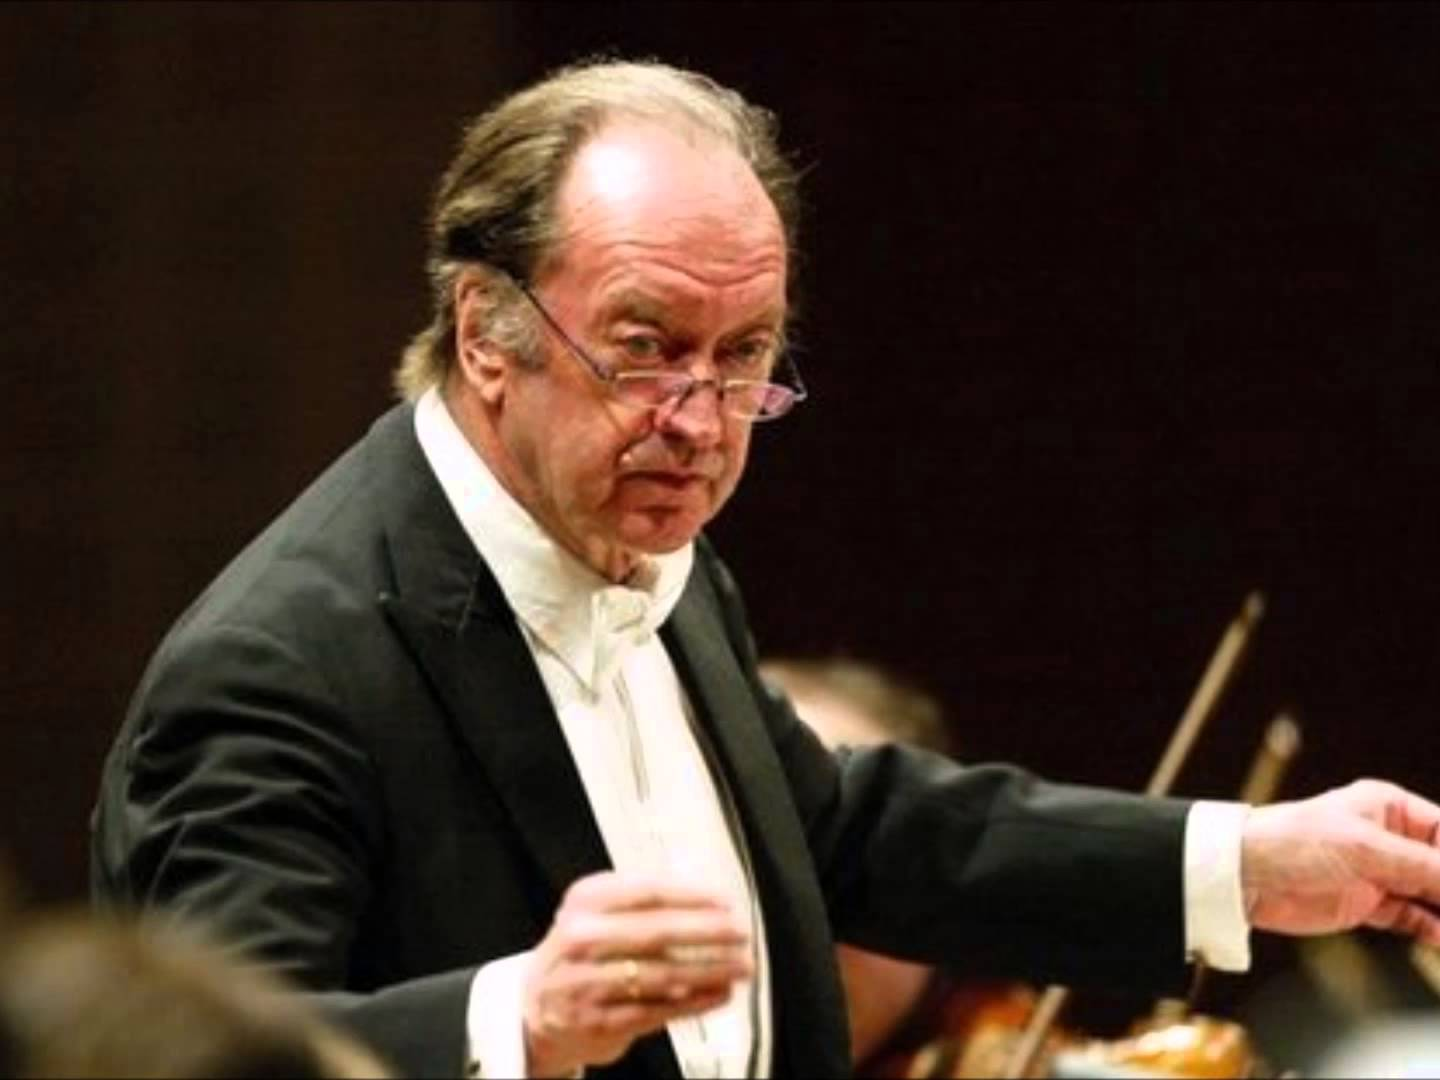 Obituario: Harnoncourt, el vitalista irreductible